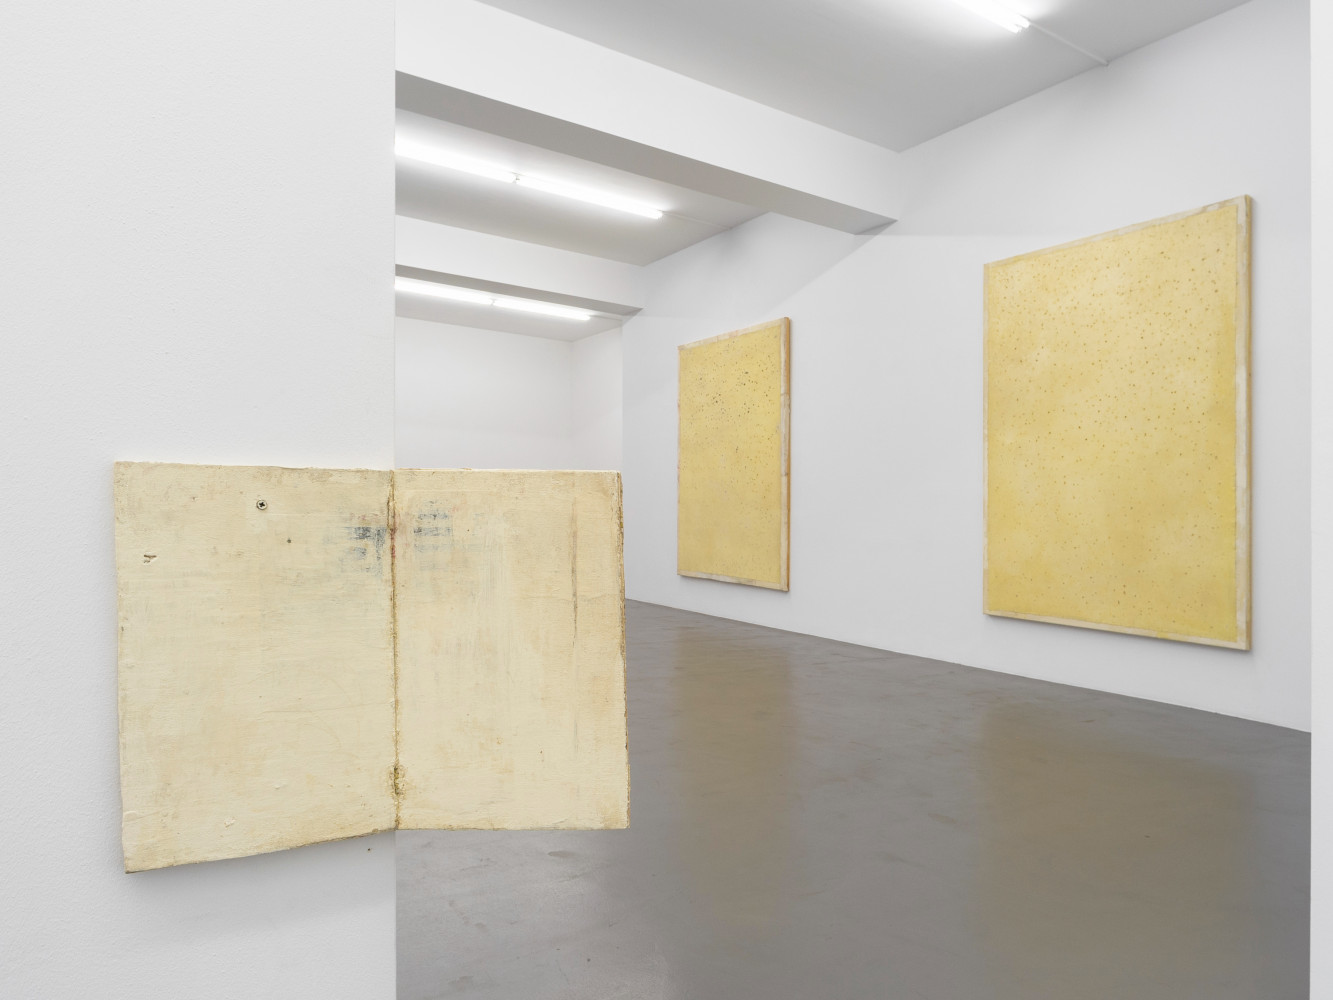 Lawrence Carroll, 'A Tribute to Lawrence Carroll', Installation view, Buchmann Galerie, 2019